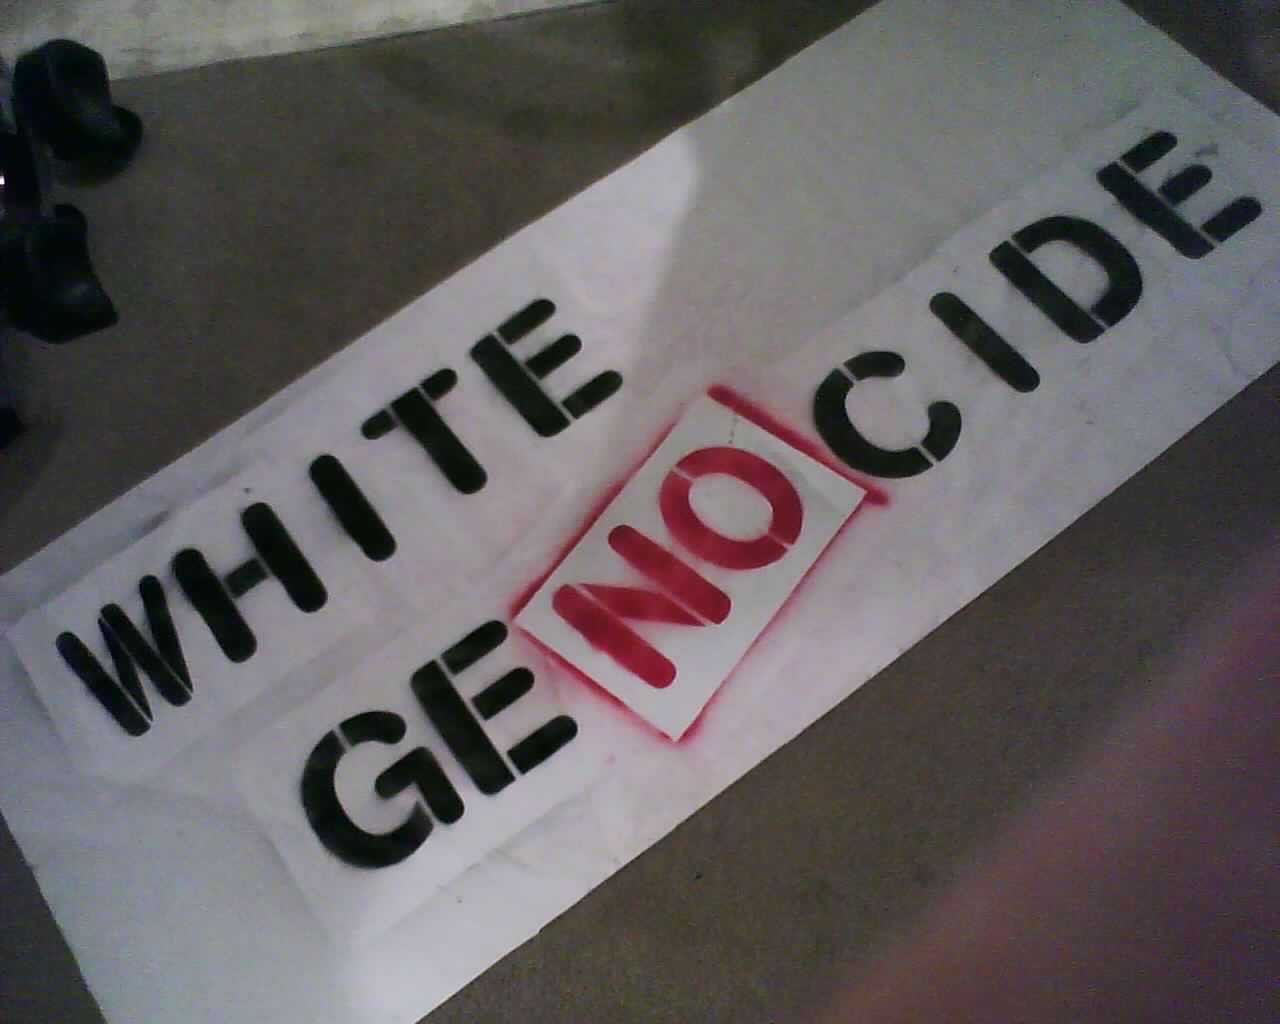 Are White Student Unions a Key to Reversing White Genocide?